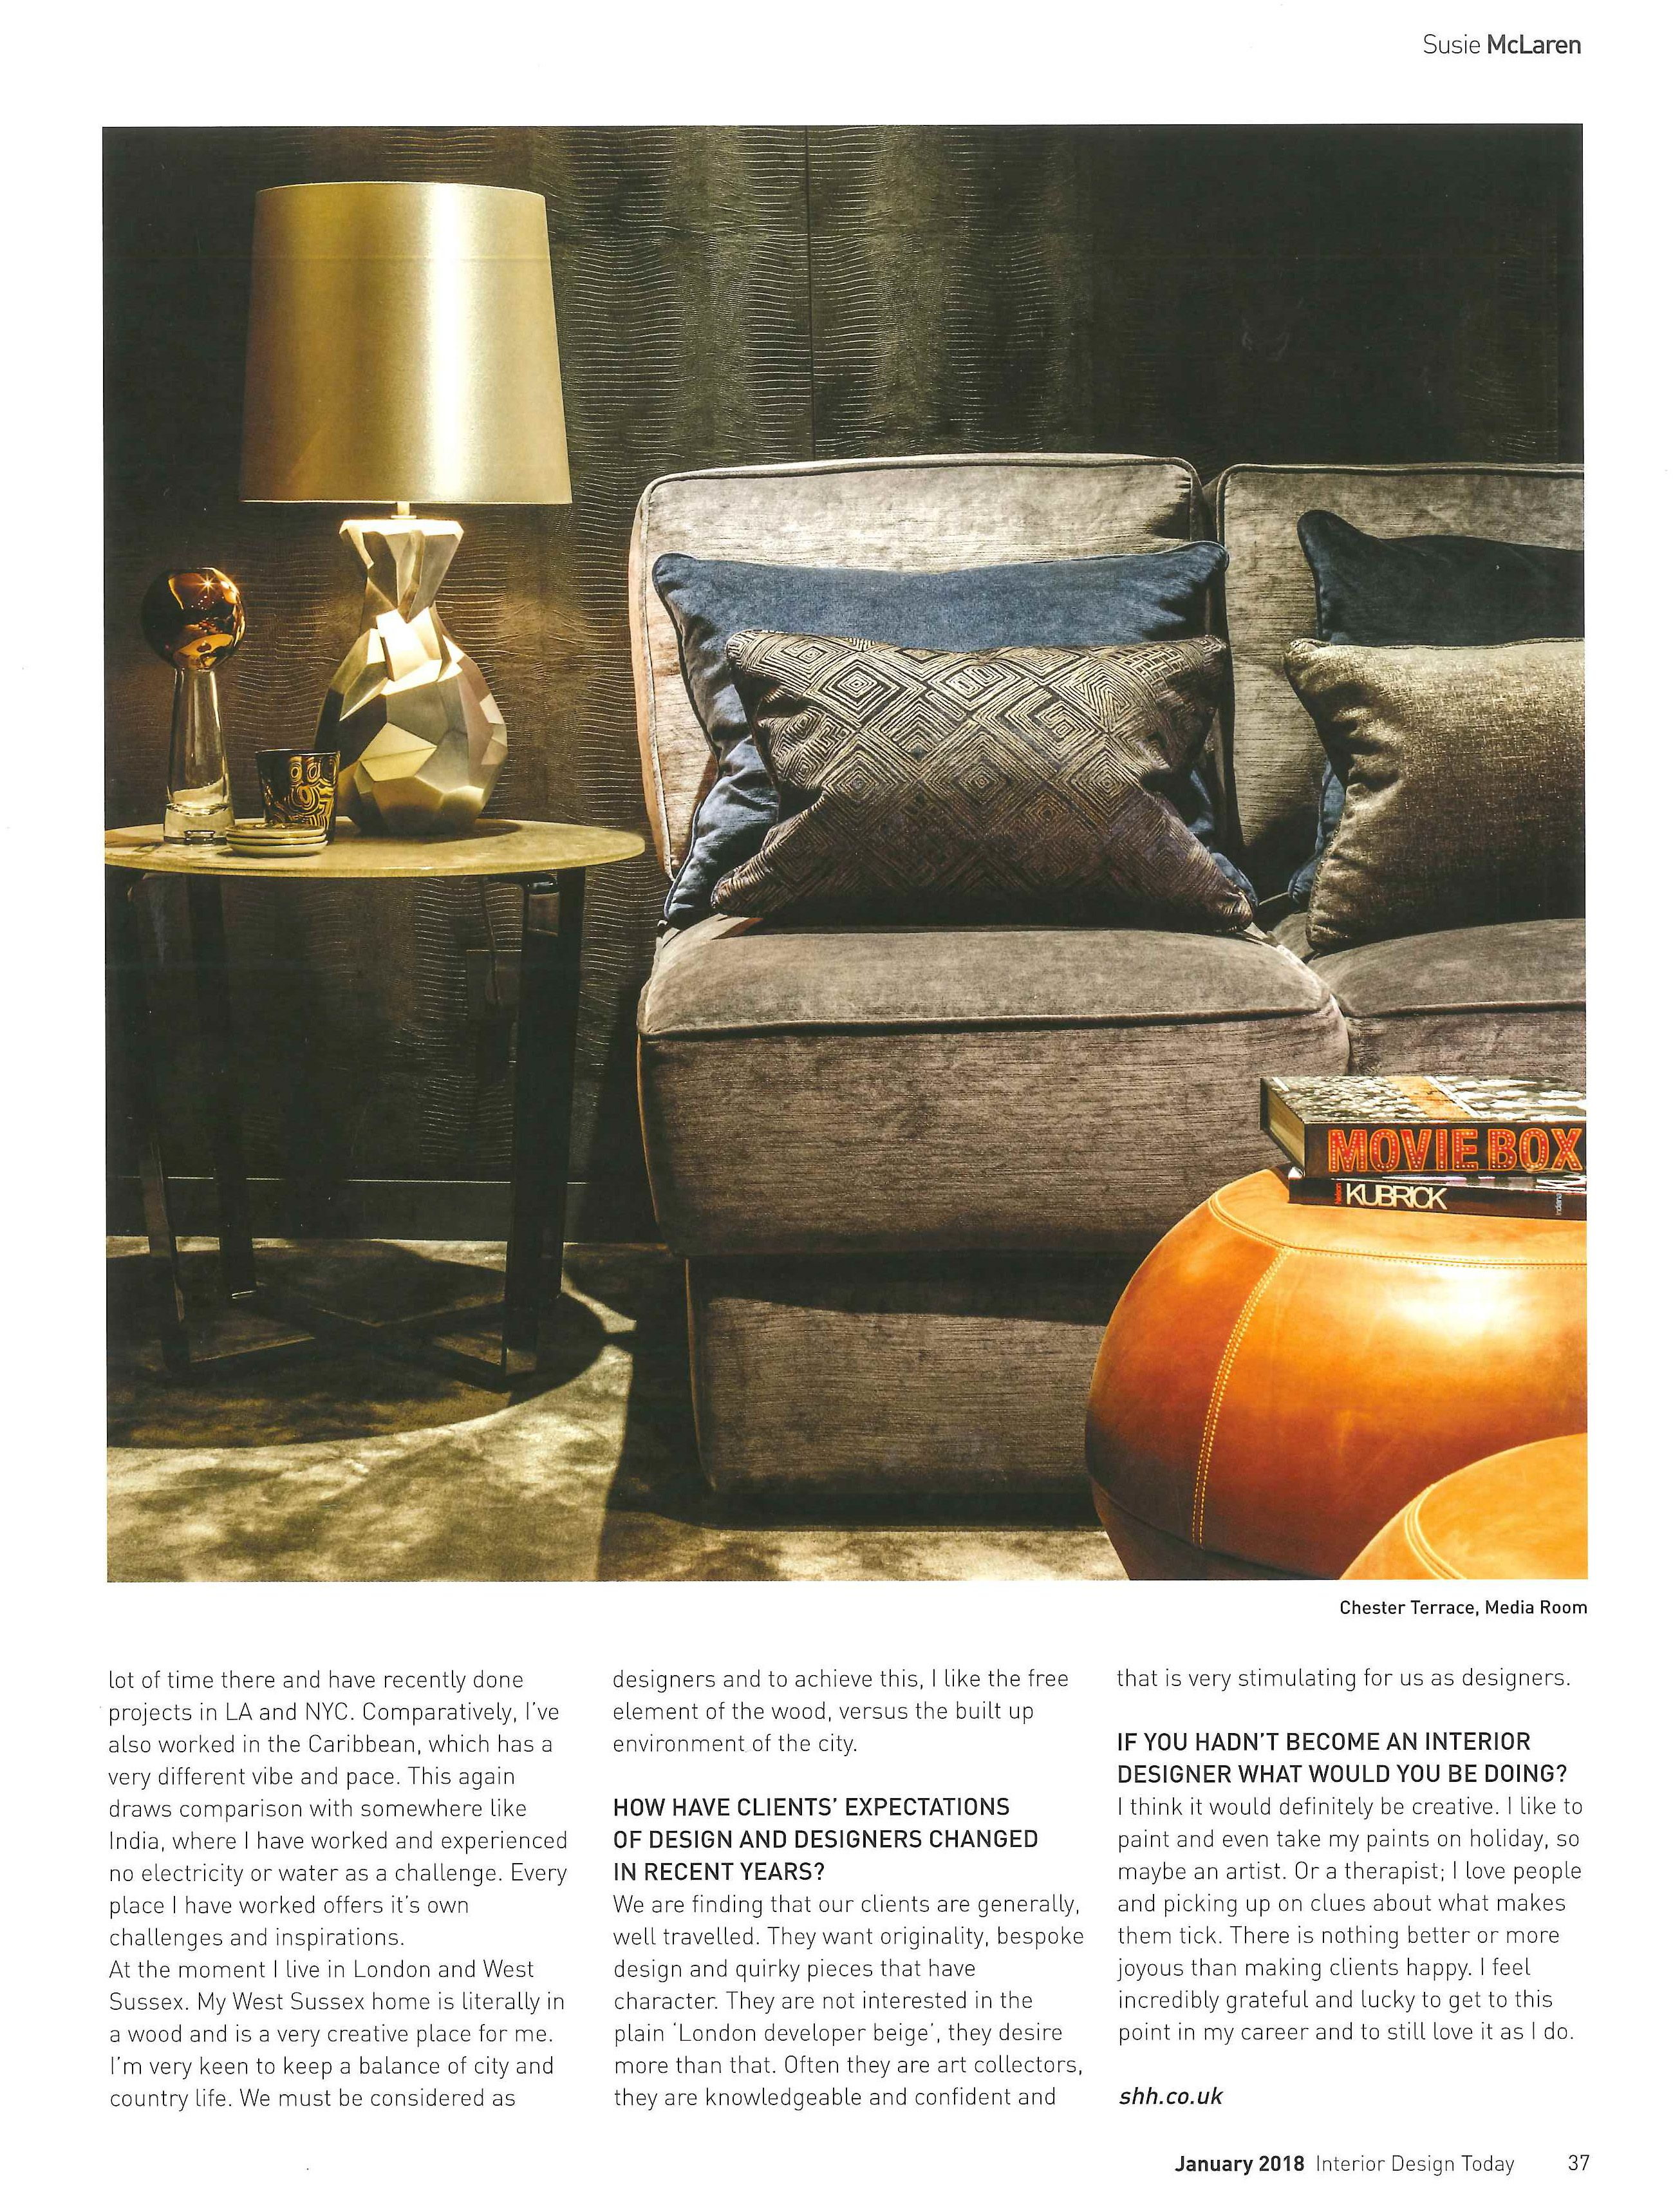 Faceted Lamp By Porta Romana Interior Shh In Design Today January 2018